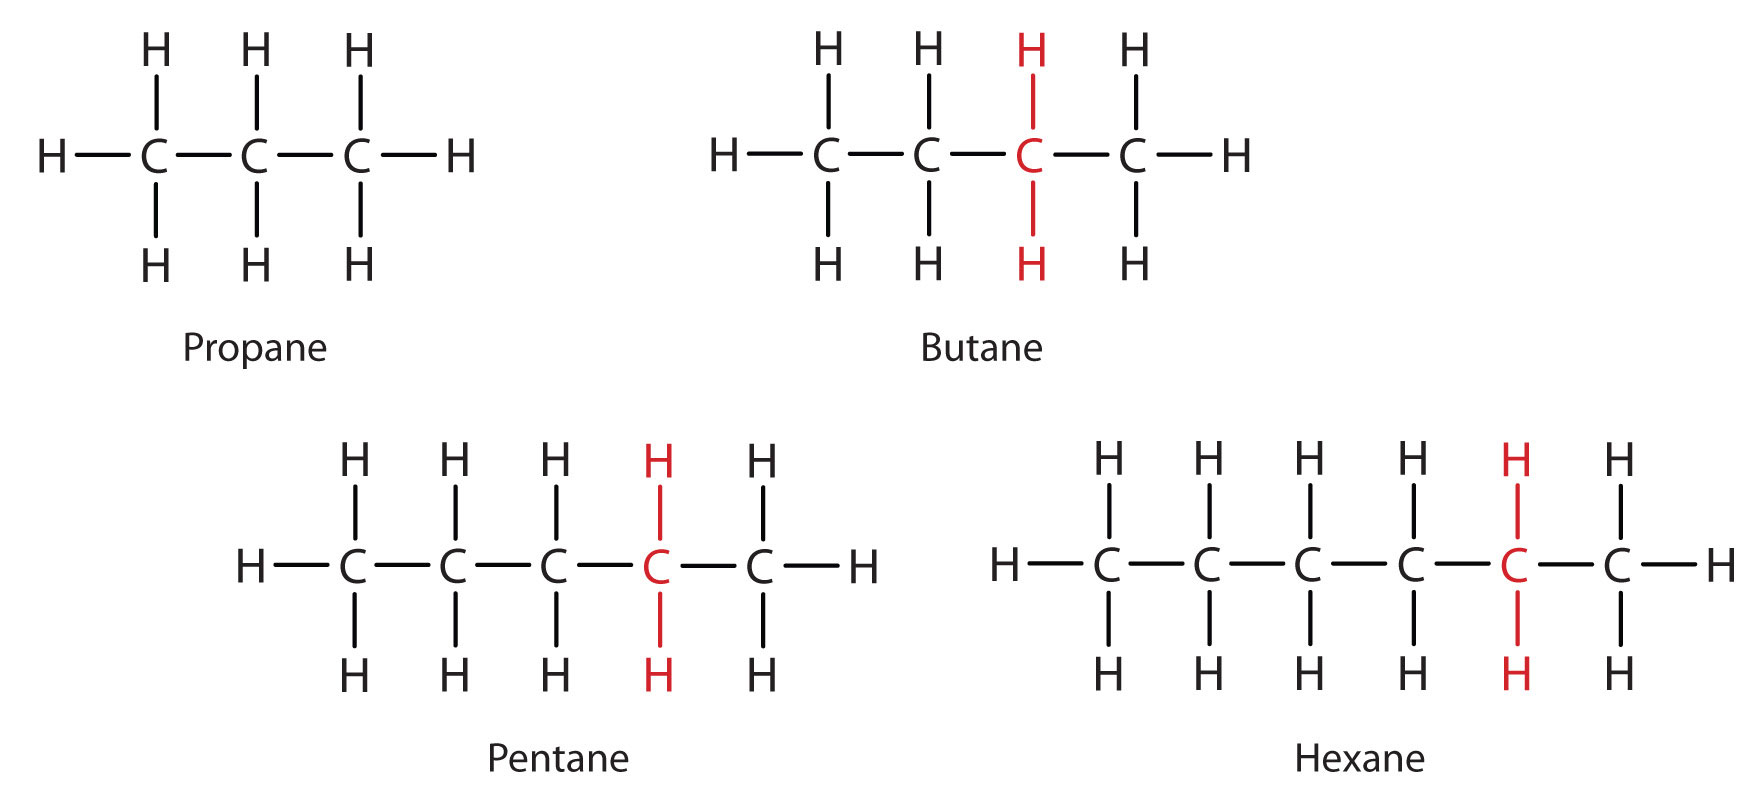 CH105: Chapter 7 - Alkanes and Halogenated Hydrocarbons ...